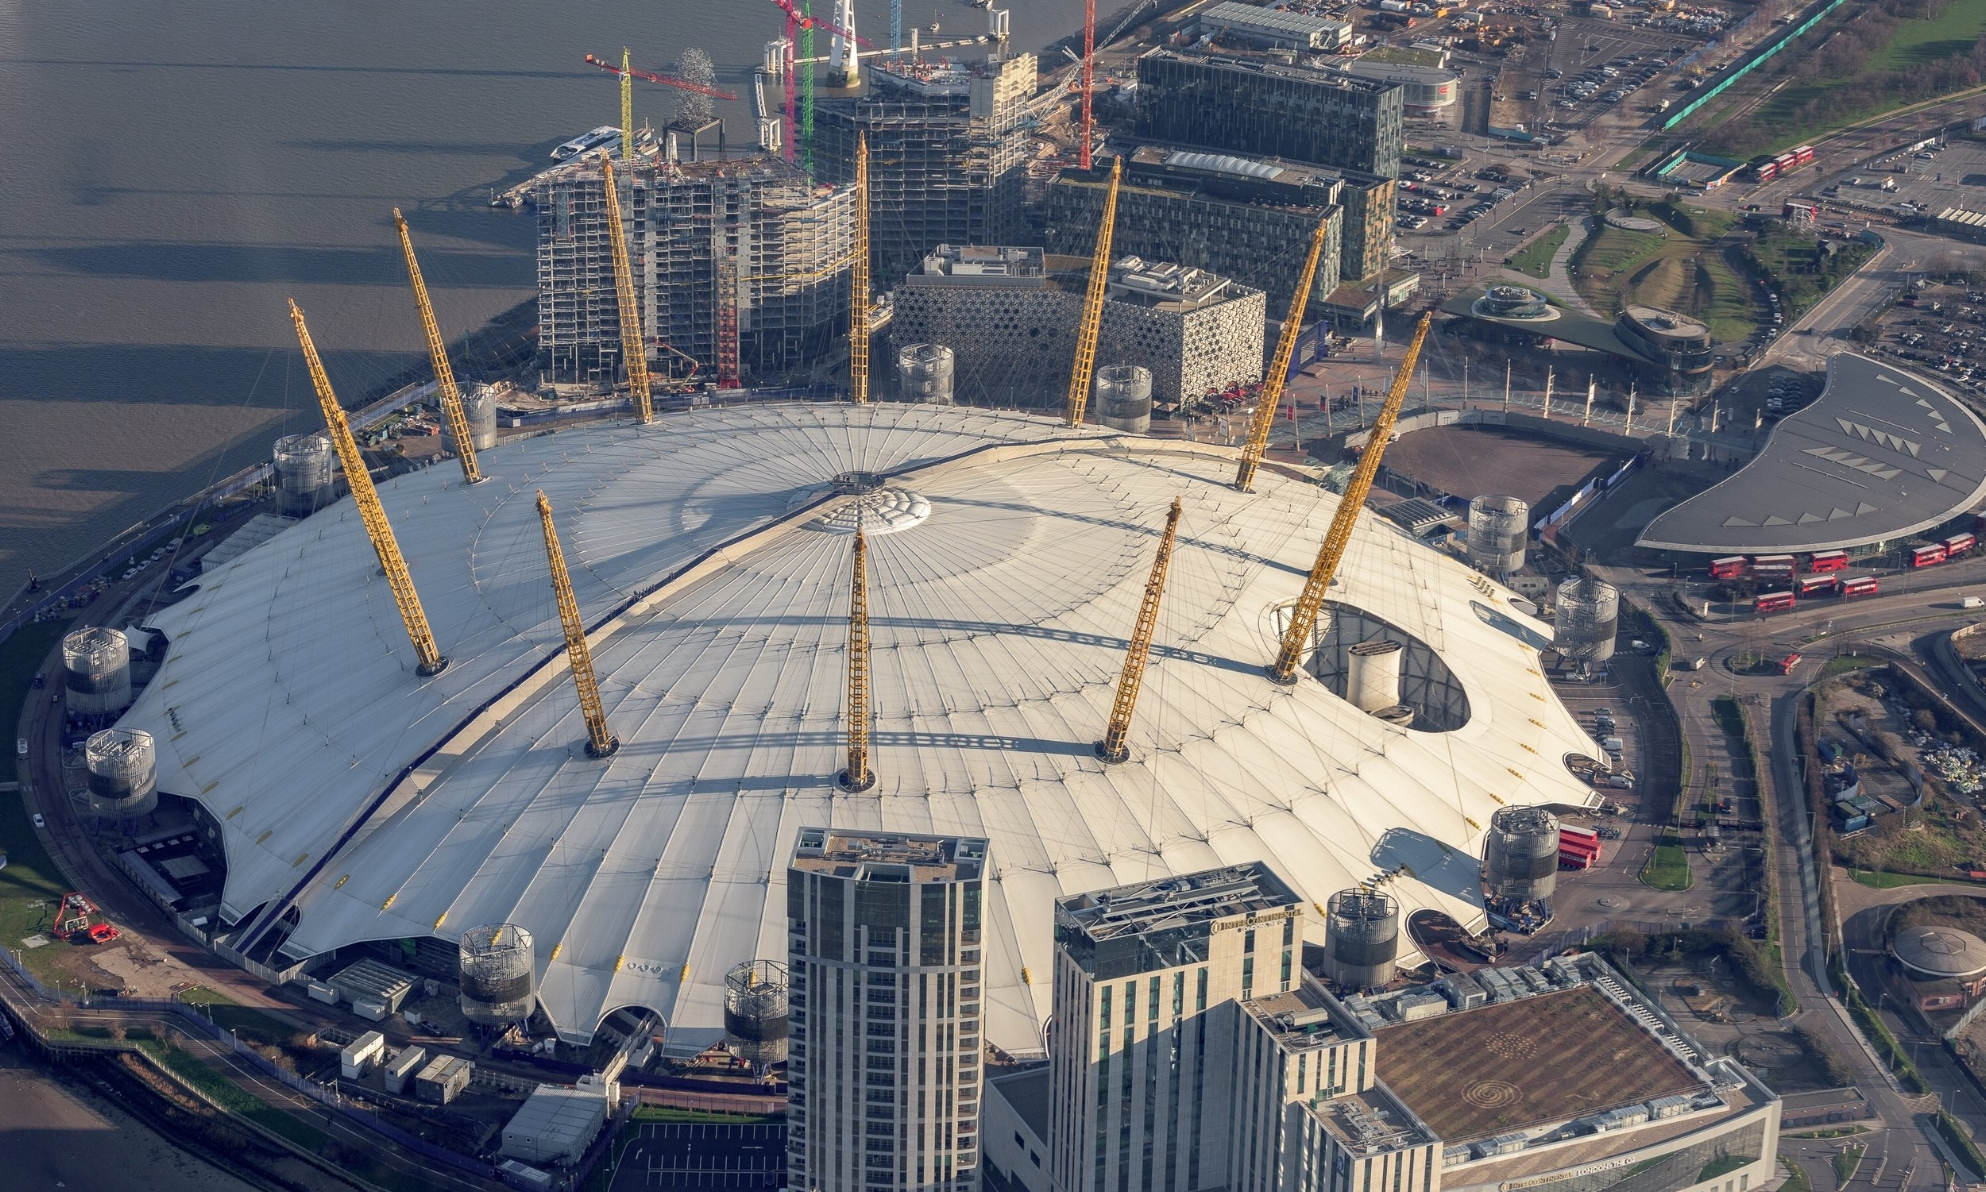 O2 Arena Dome Aerial View from Helicopter